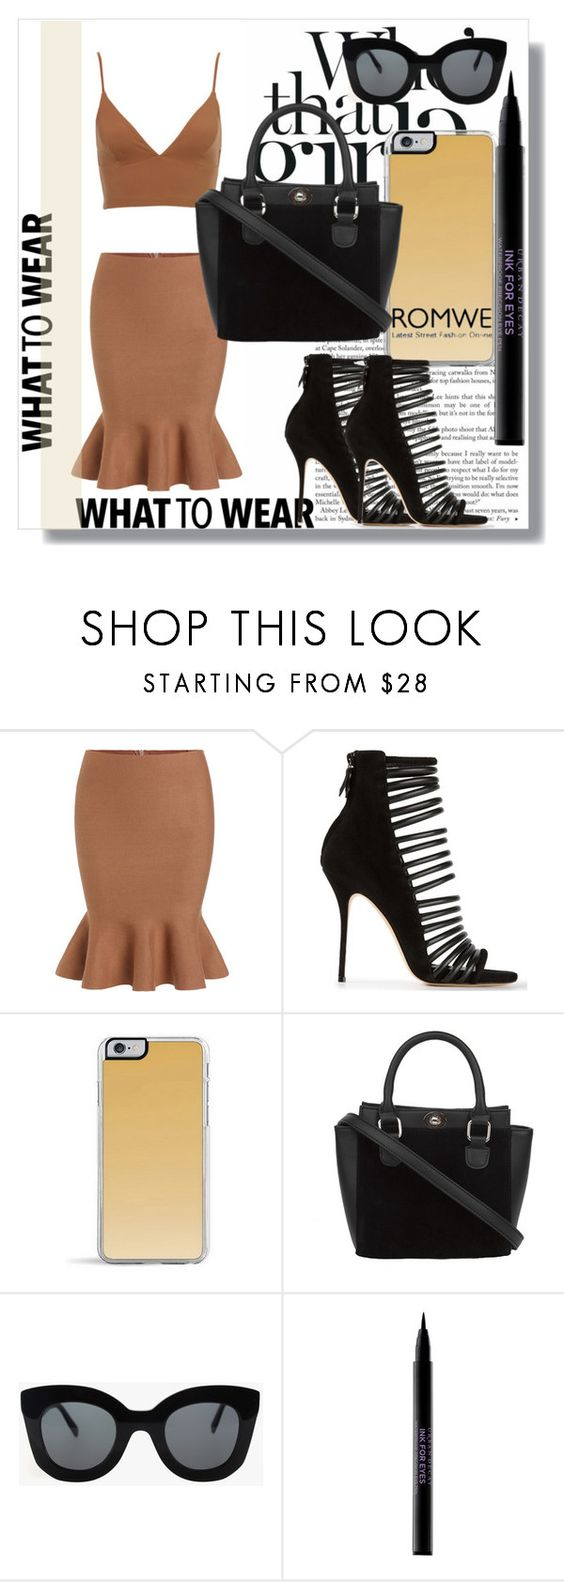 """Romwe !!"" by dianagrigoryan ❤ liked on Polyvore featuring Casadei, Zero Gravity, CÉLINE, Urban Decay, women's clothing, women, female, woman, misses and juniors"